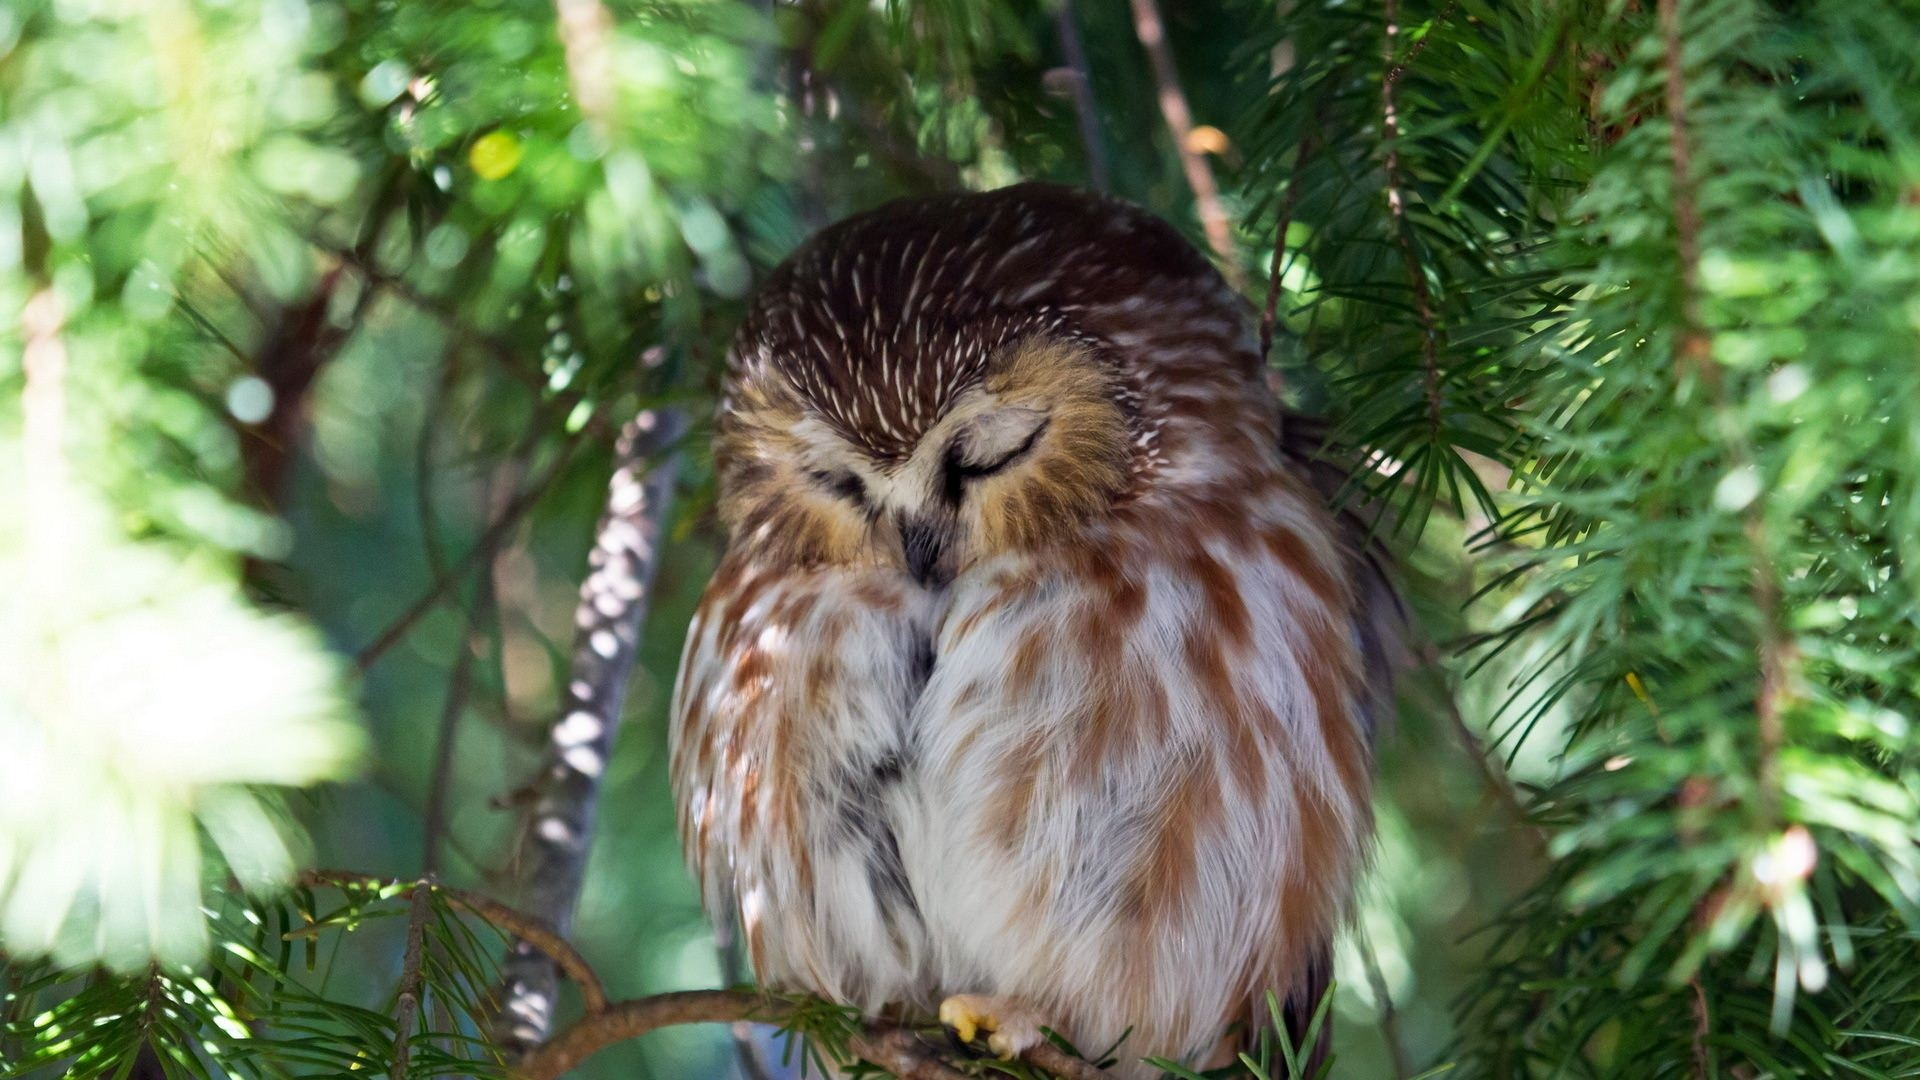 Sleeping Owl Wallpaper